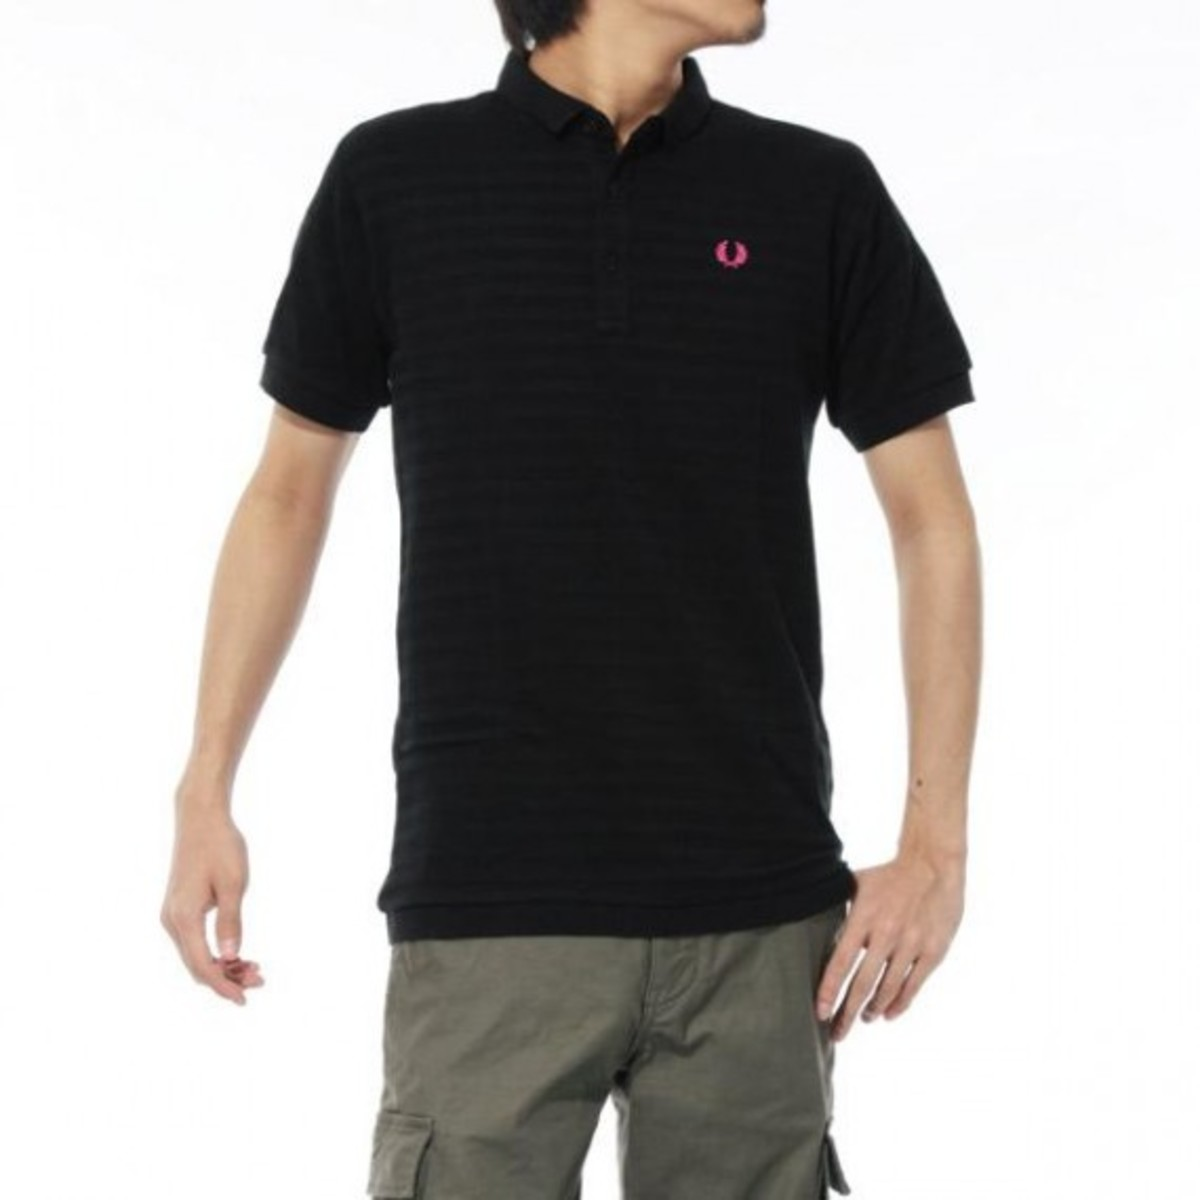 border-polo-shirt-02